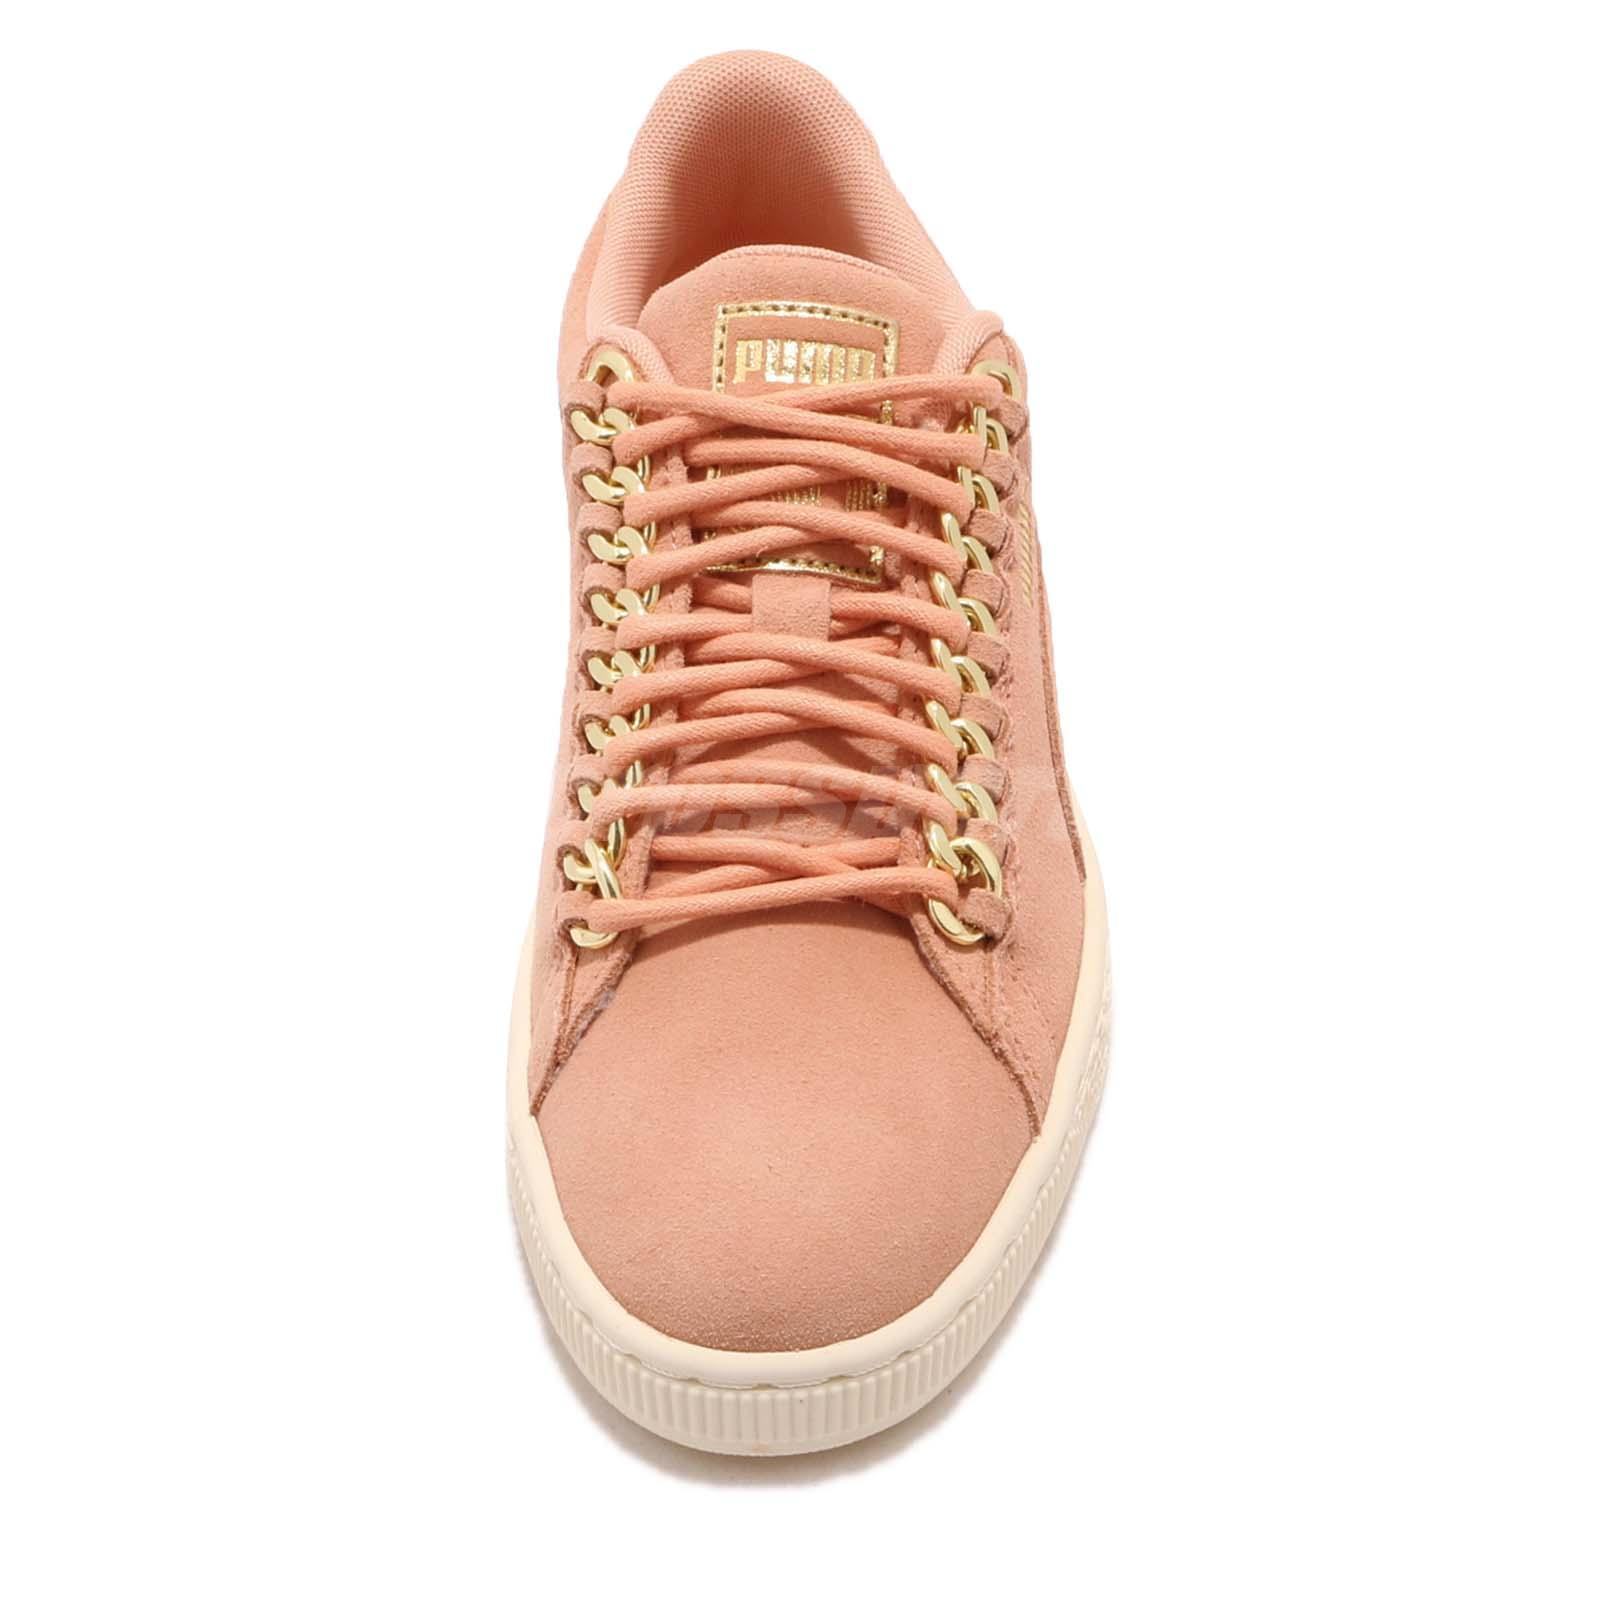 Puma Dusty Suede Classic Women Coral Shoes X Chain Wns Gold Casual Pw8n0OXk